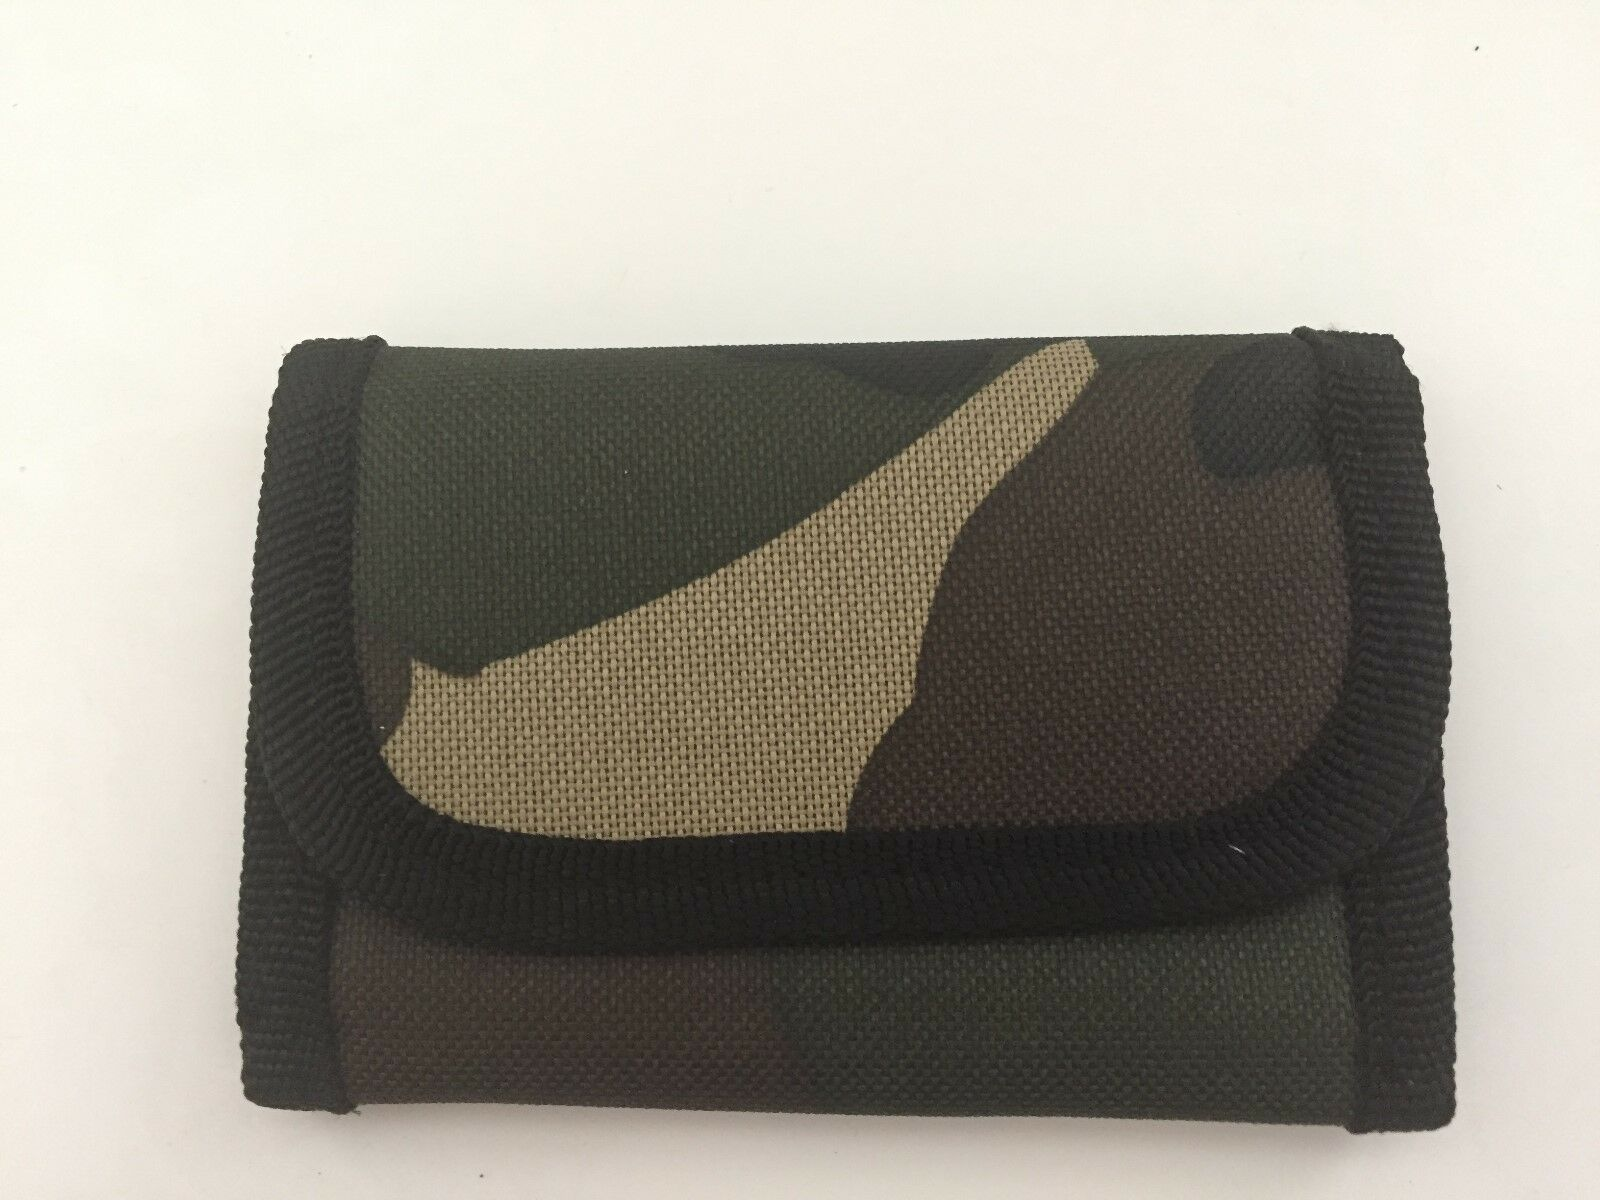 2-Soft Sided Unisex Wallet with Belt Strap-Camo